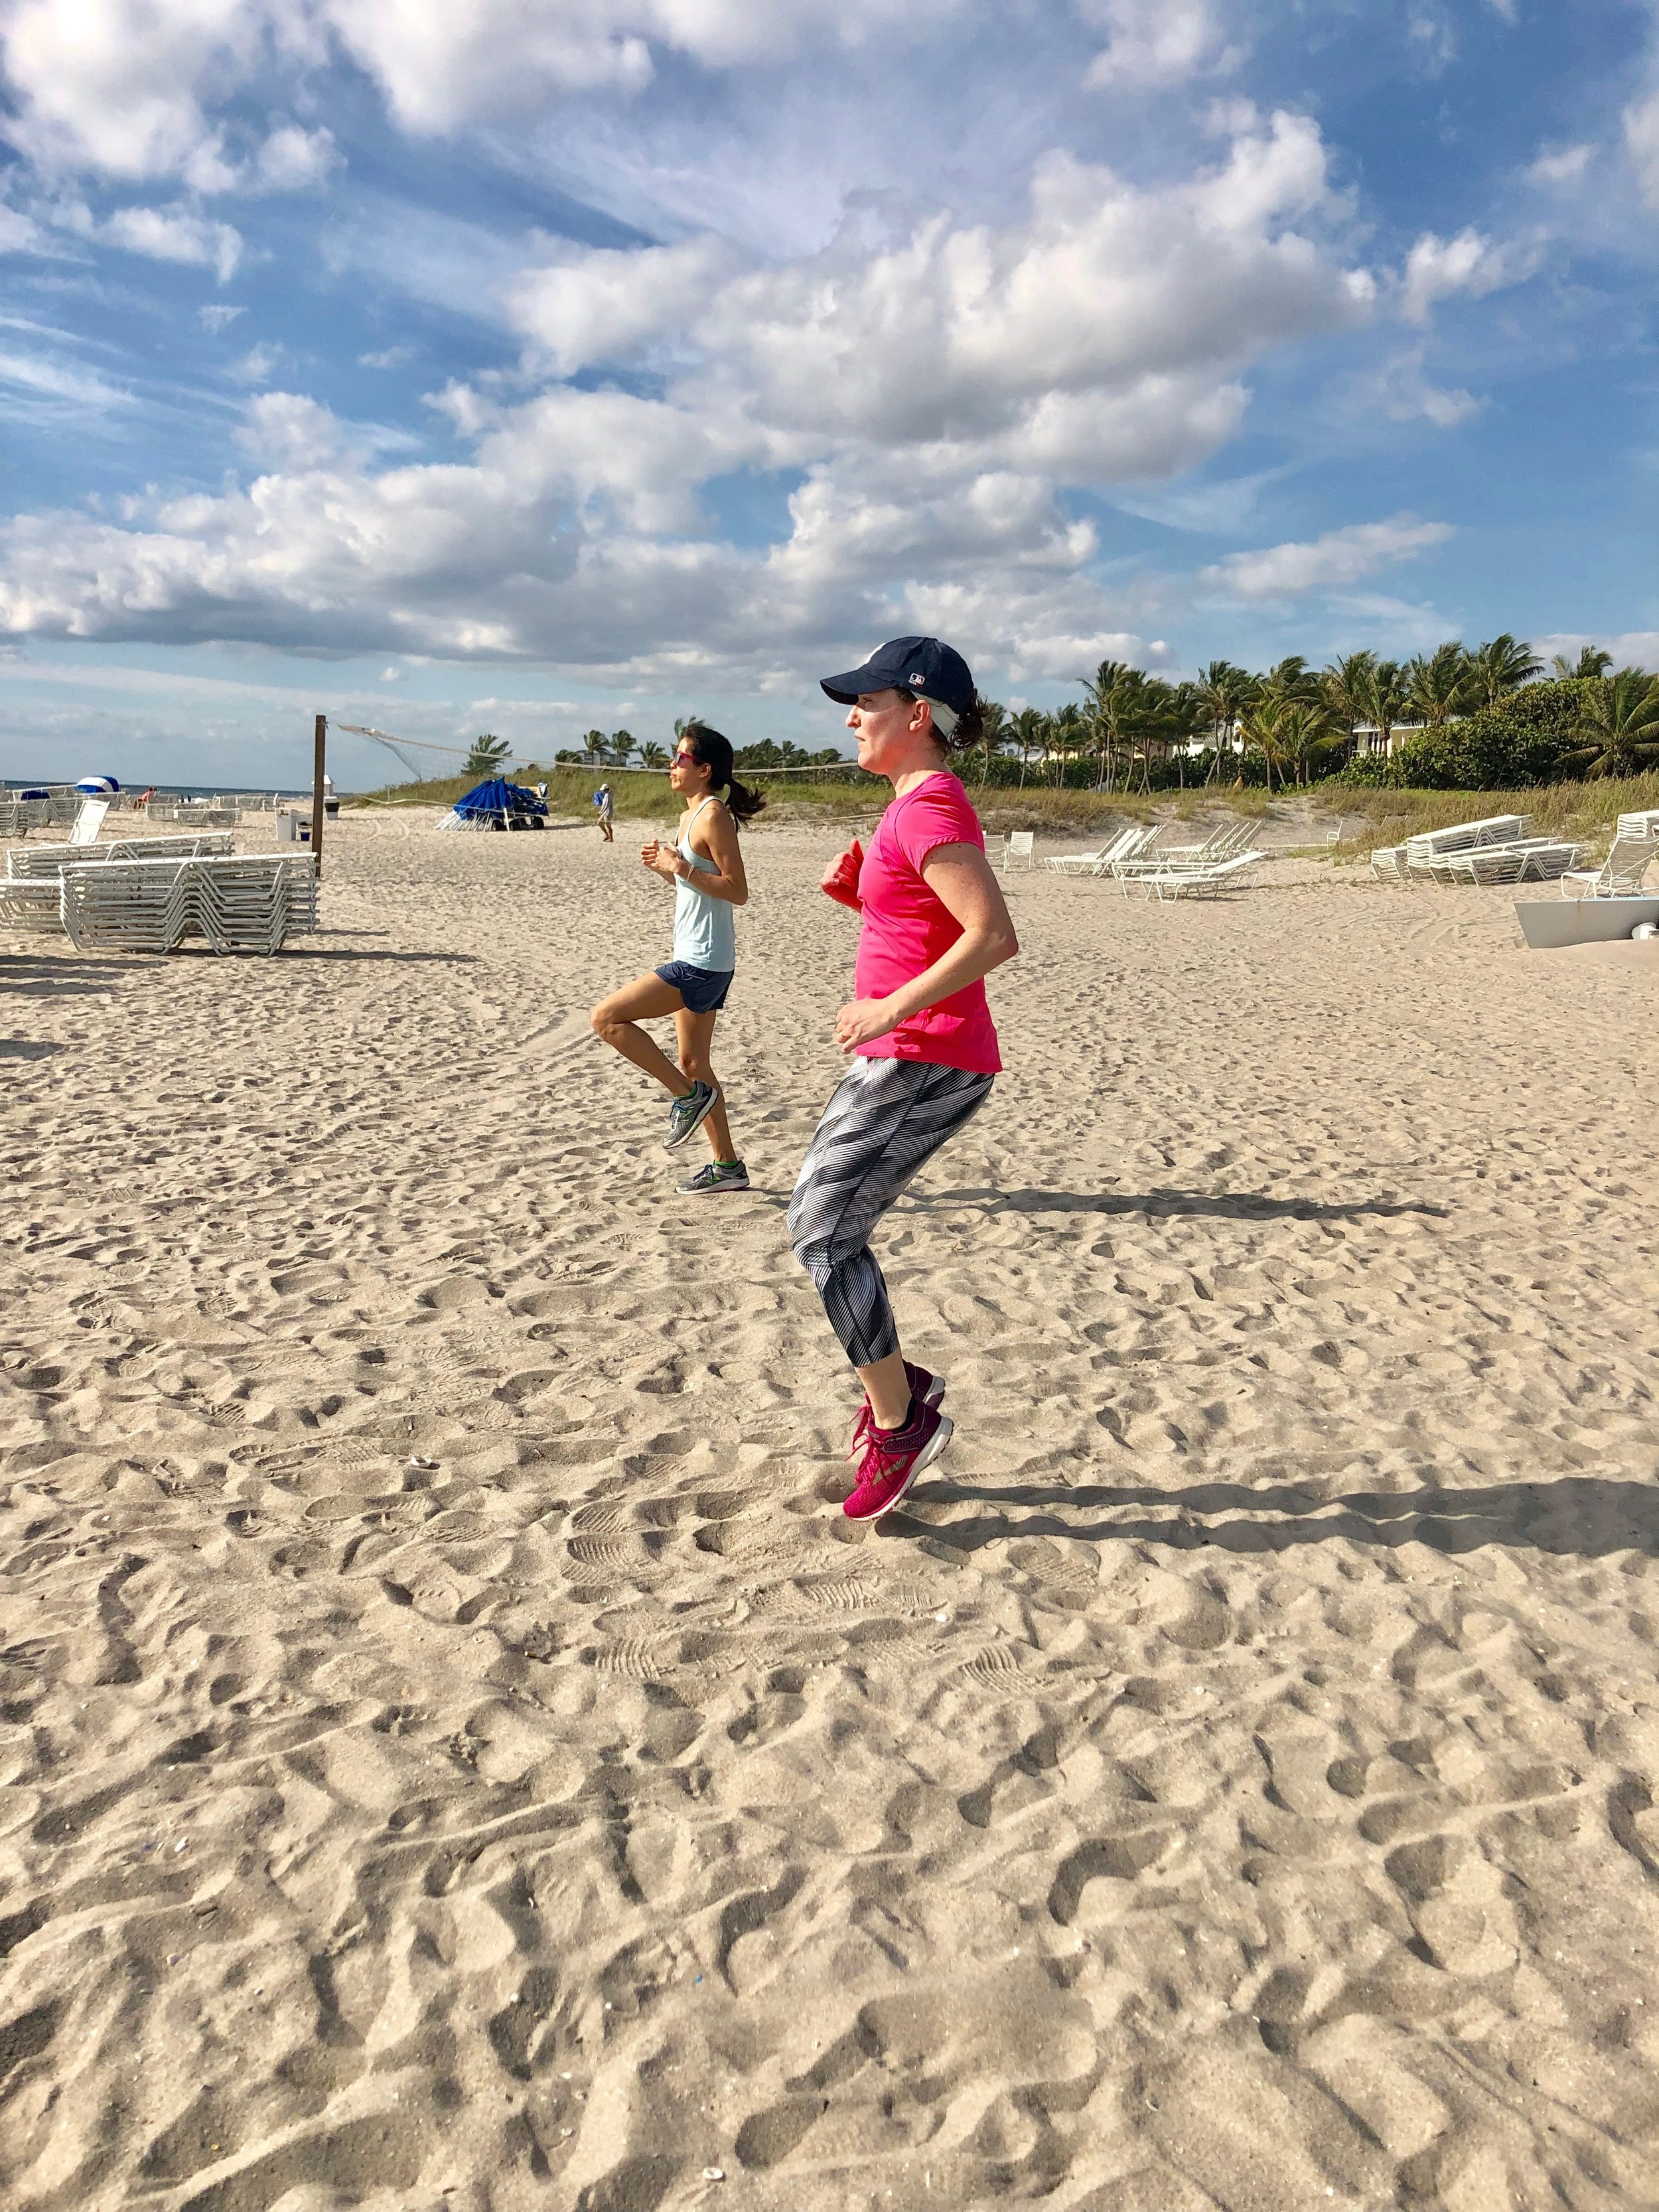 Boot camp speed run on the sand.